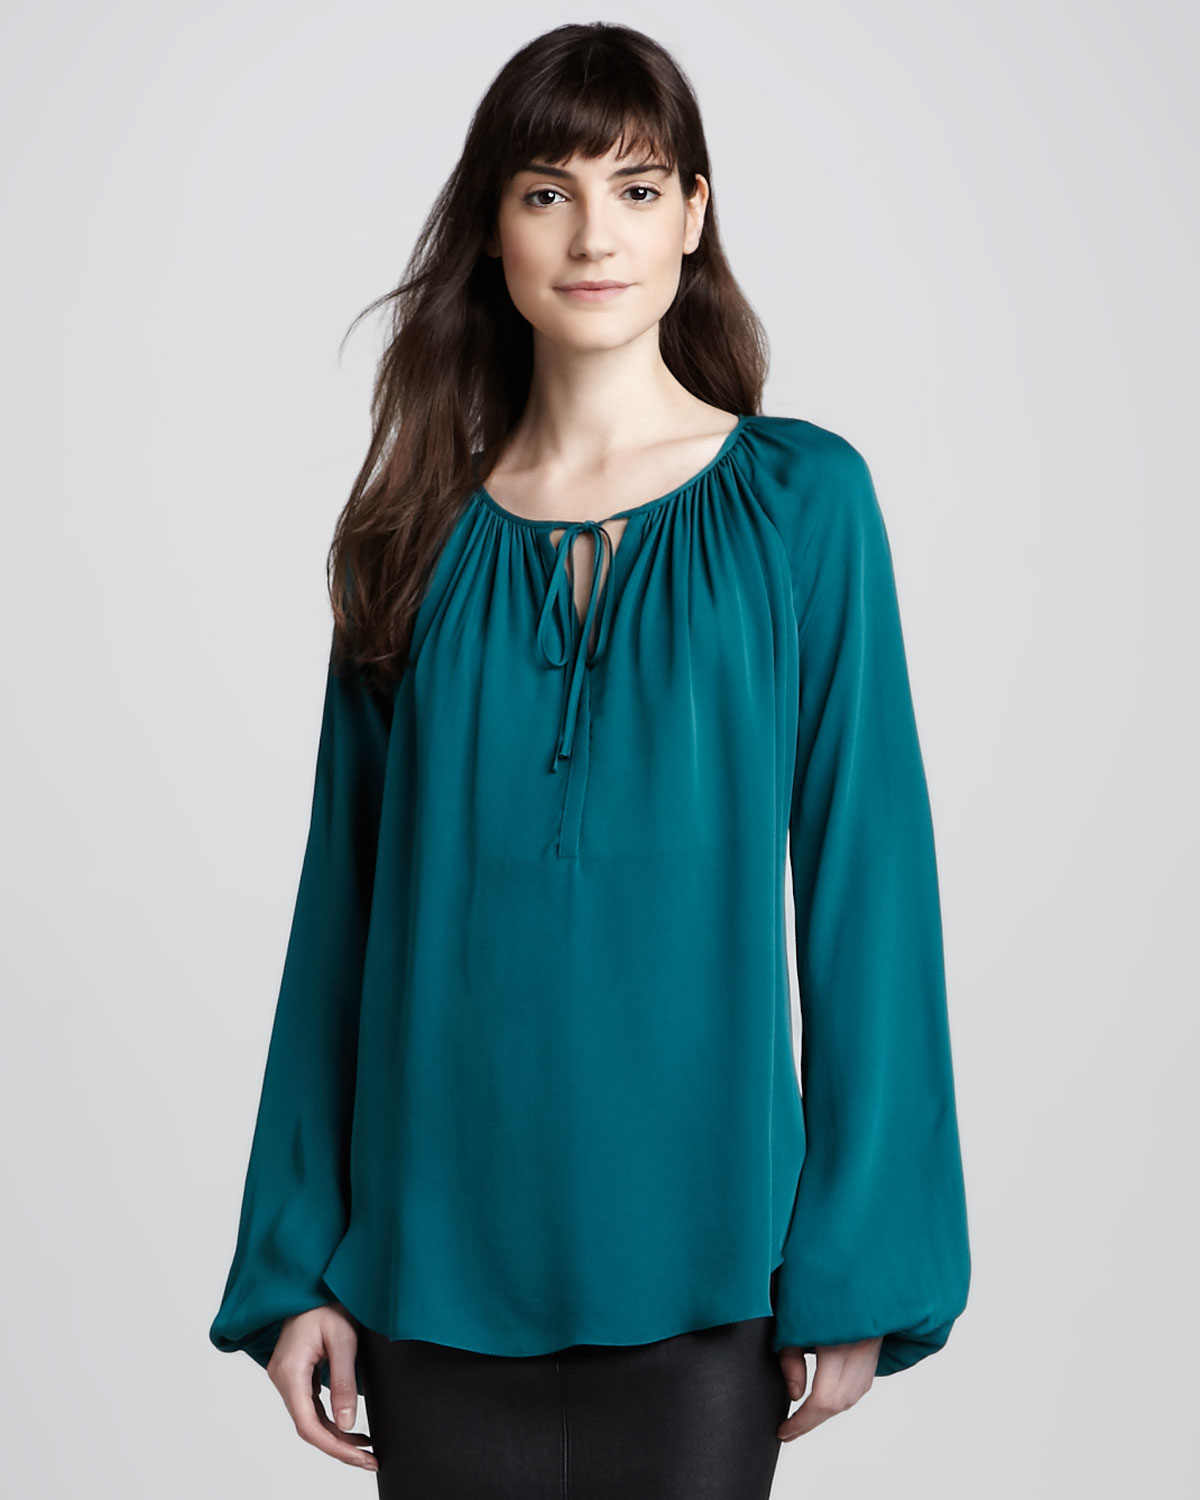 Dressy Tops. Ready to take on the season with fashionable flair? Discover our terrific selection of dressy tops. From bold blouses to trendy tunics, these stylish standouts are sure to elevate any look.